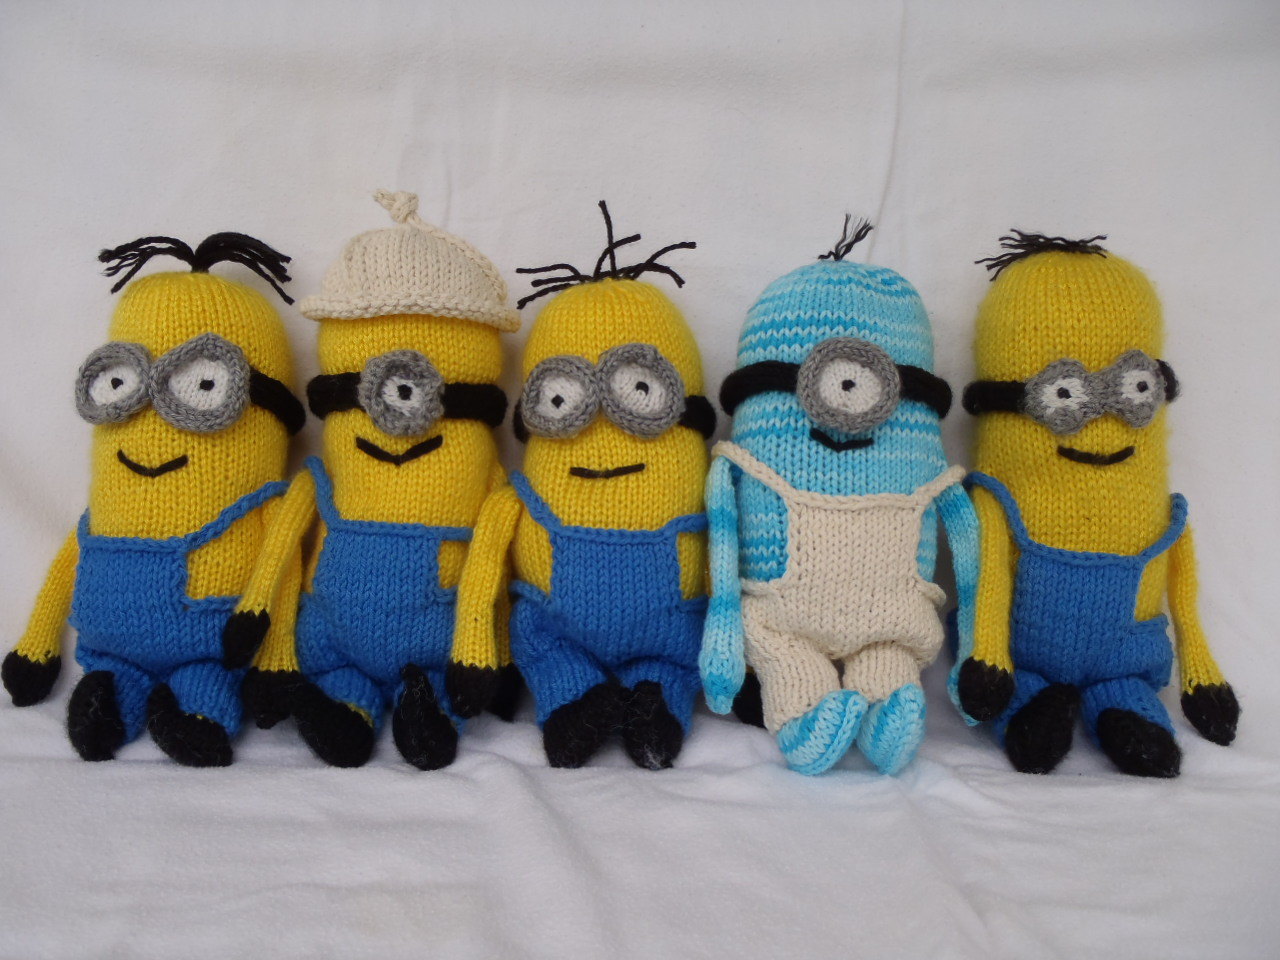 Knitting Patterns Toys : Stanas Critters Etc.: Knitting Pattern for Minions - Part 2